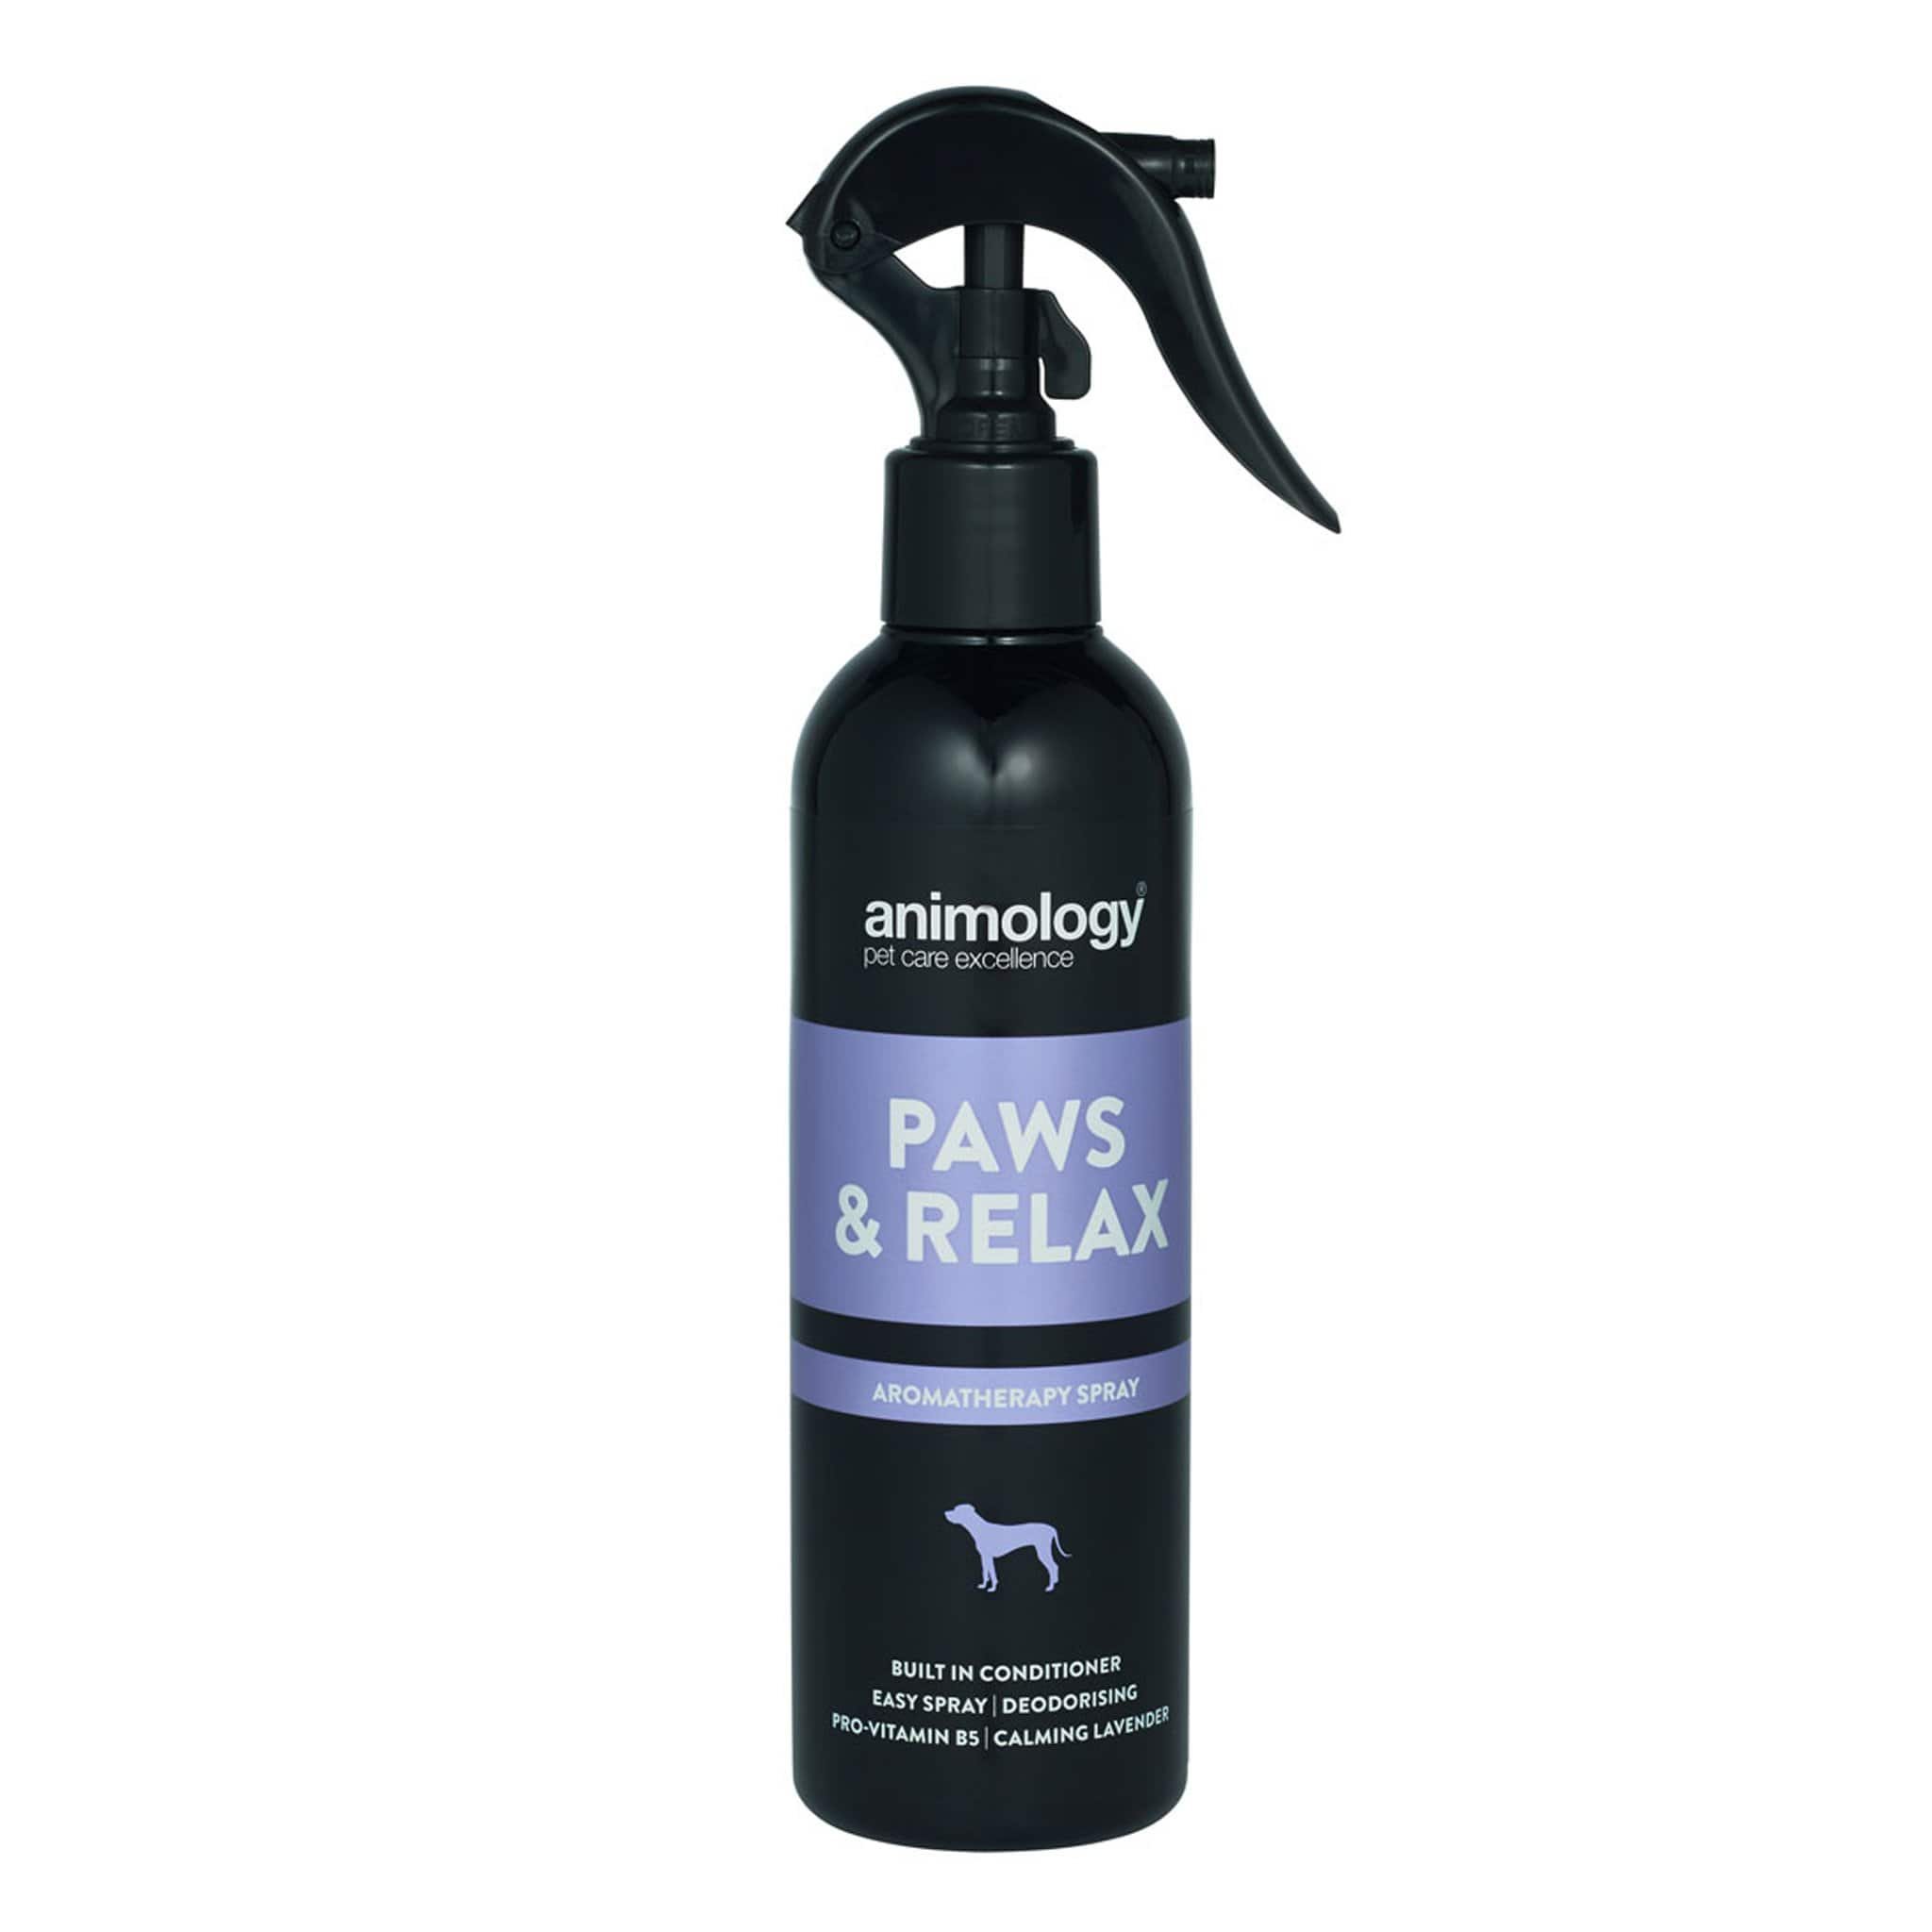 Animology Paws & Relax Aromatherapy Spray 17109 250ml